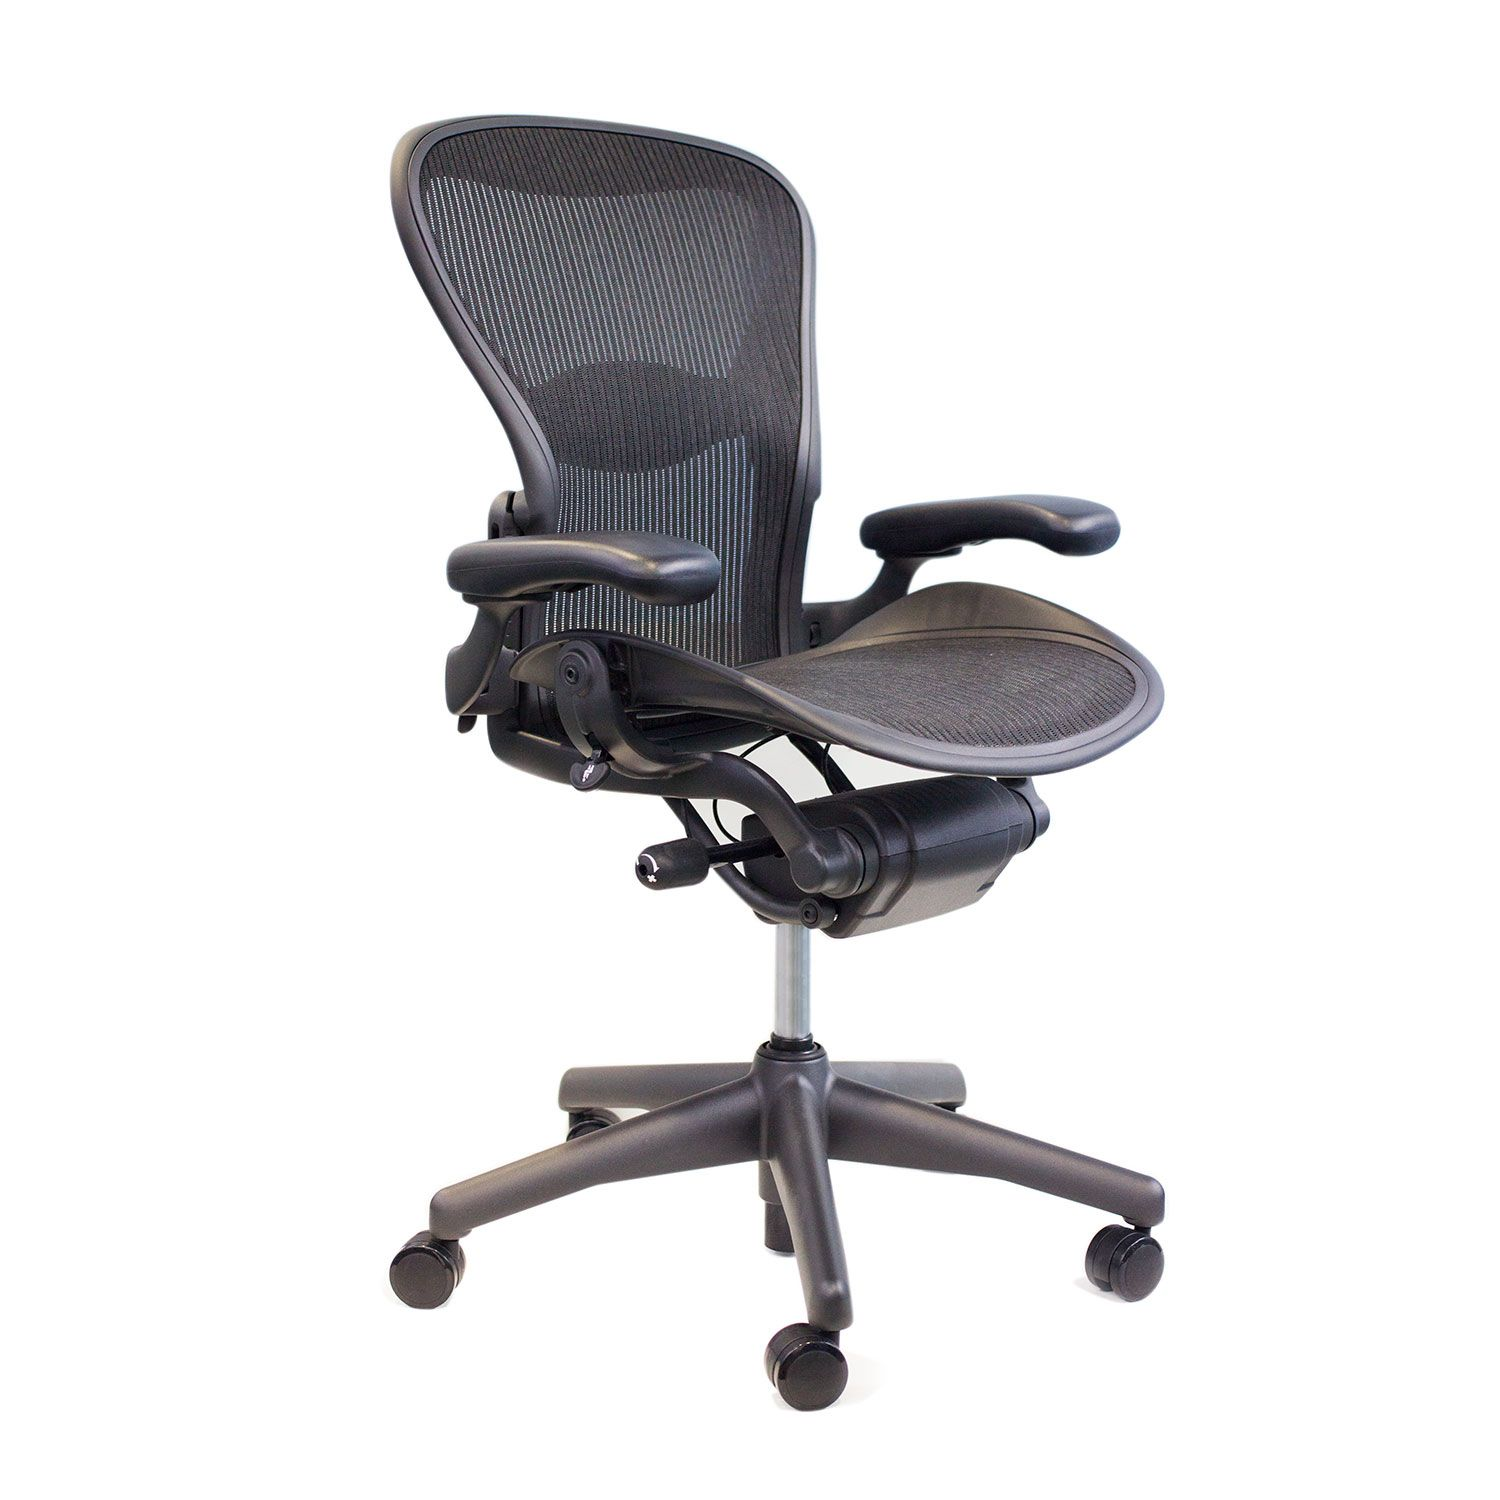 Superb img of Herman Miller Aeron Chair AE113AWB published on 08 25 2015 with #726359 color and 1500x1500 pixels